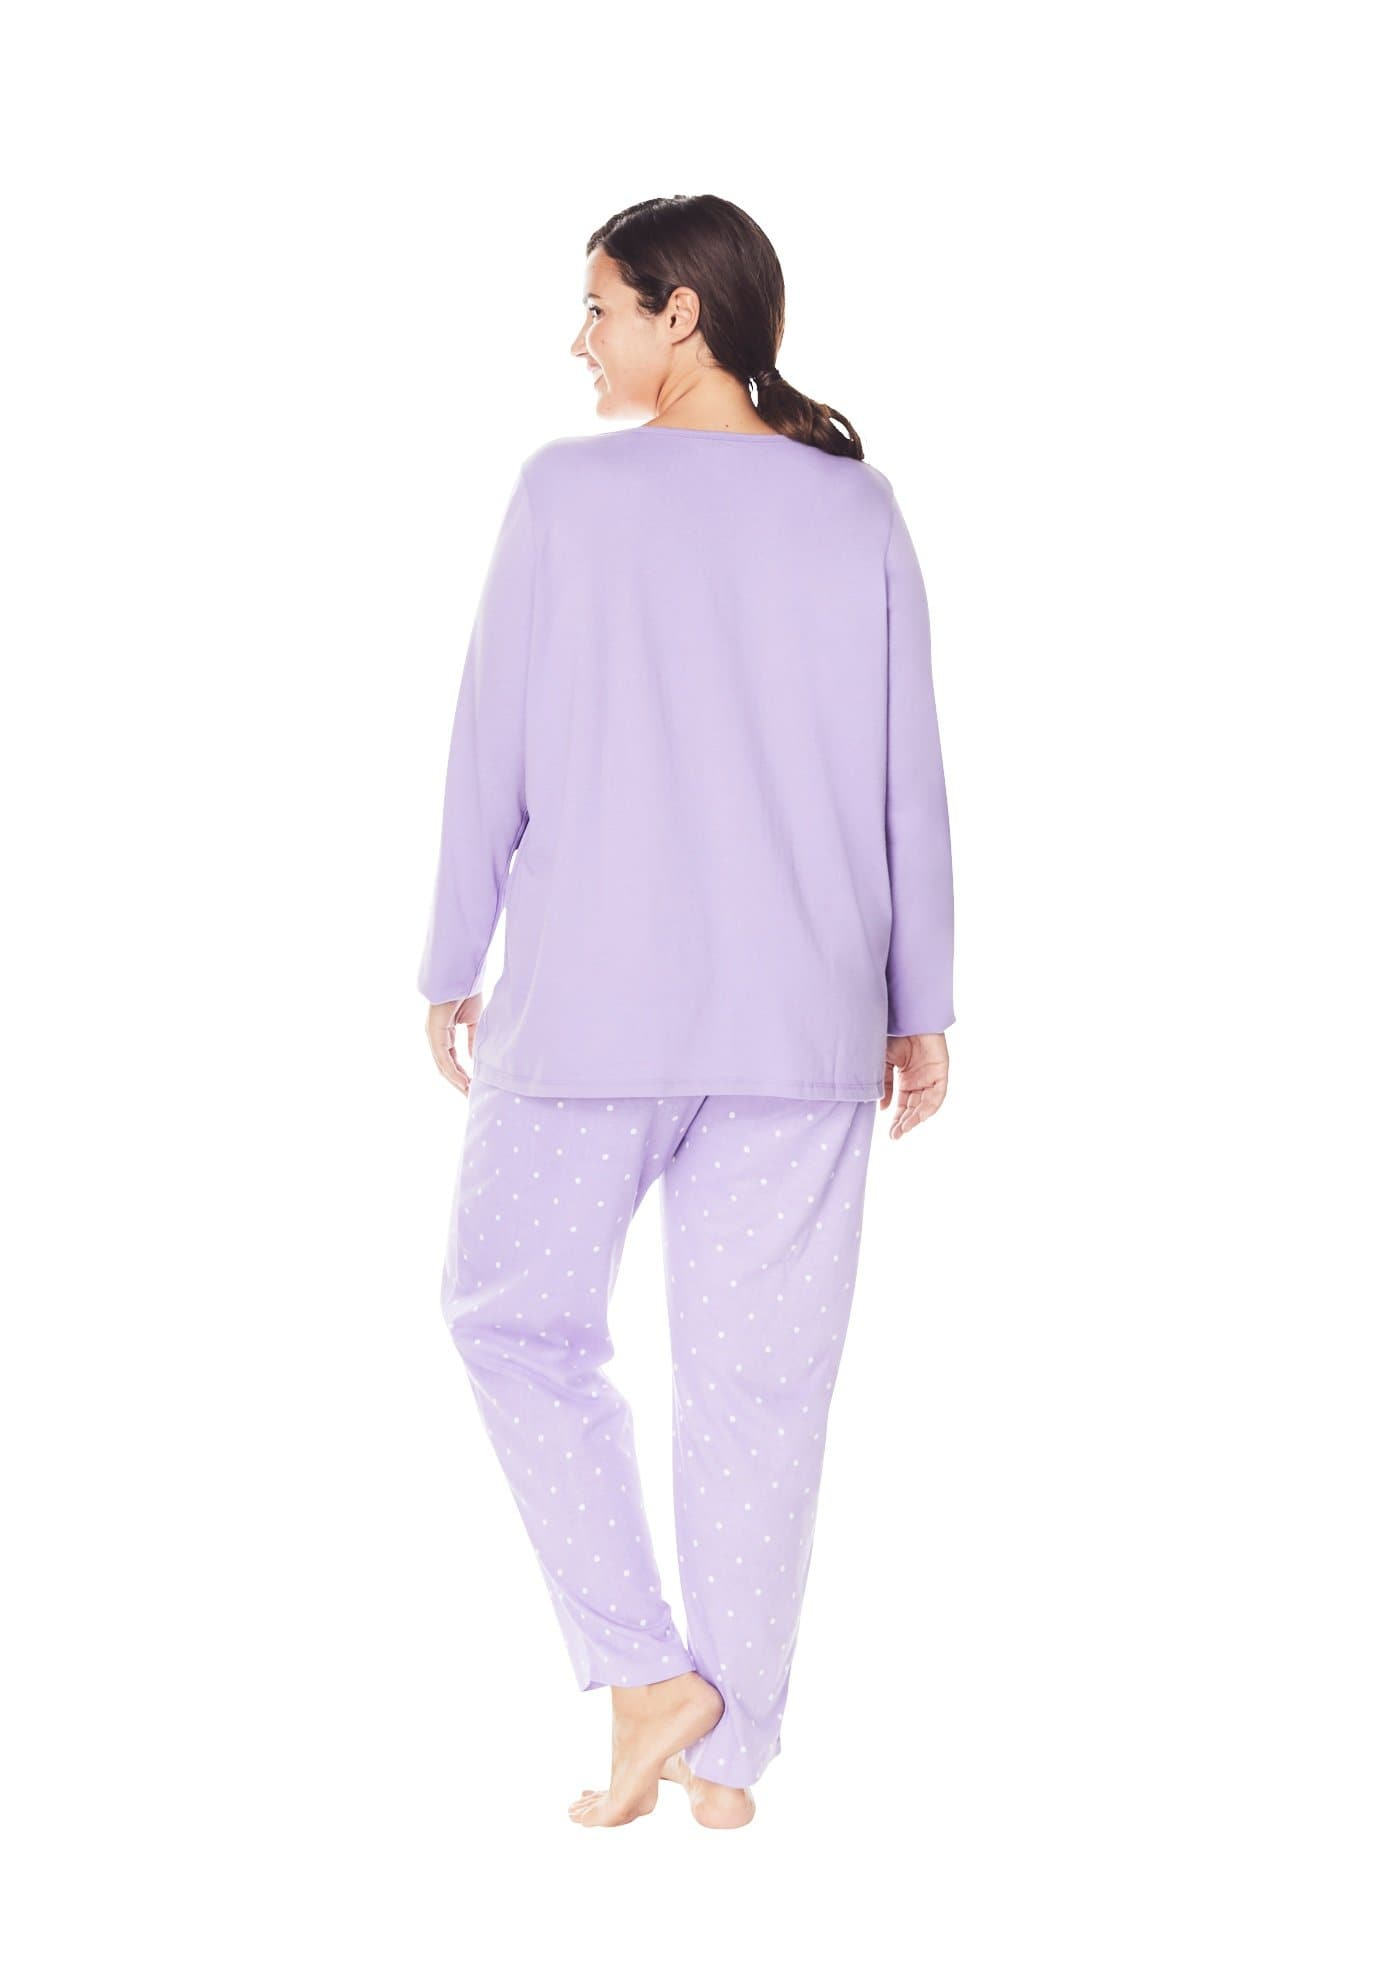 Dreams & Co. Women's Plus Size Long Sleeve Knit PJ Set - FLJ CORPORATIONS